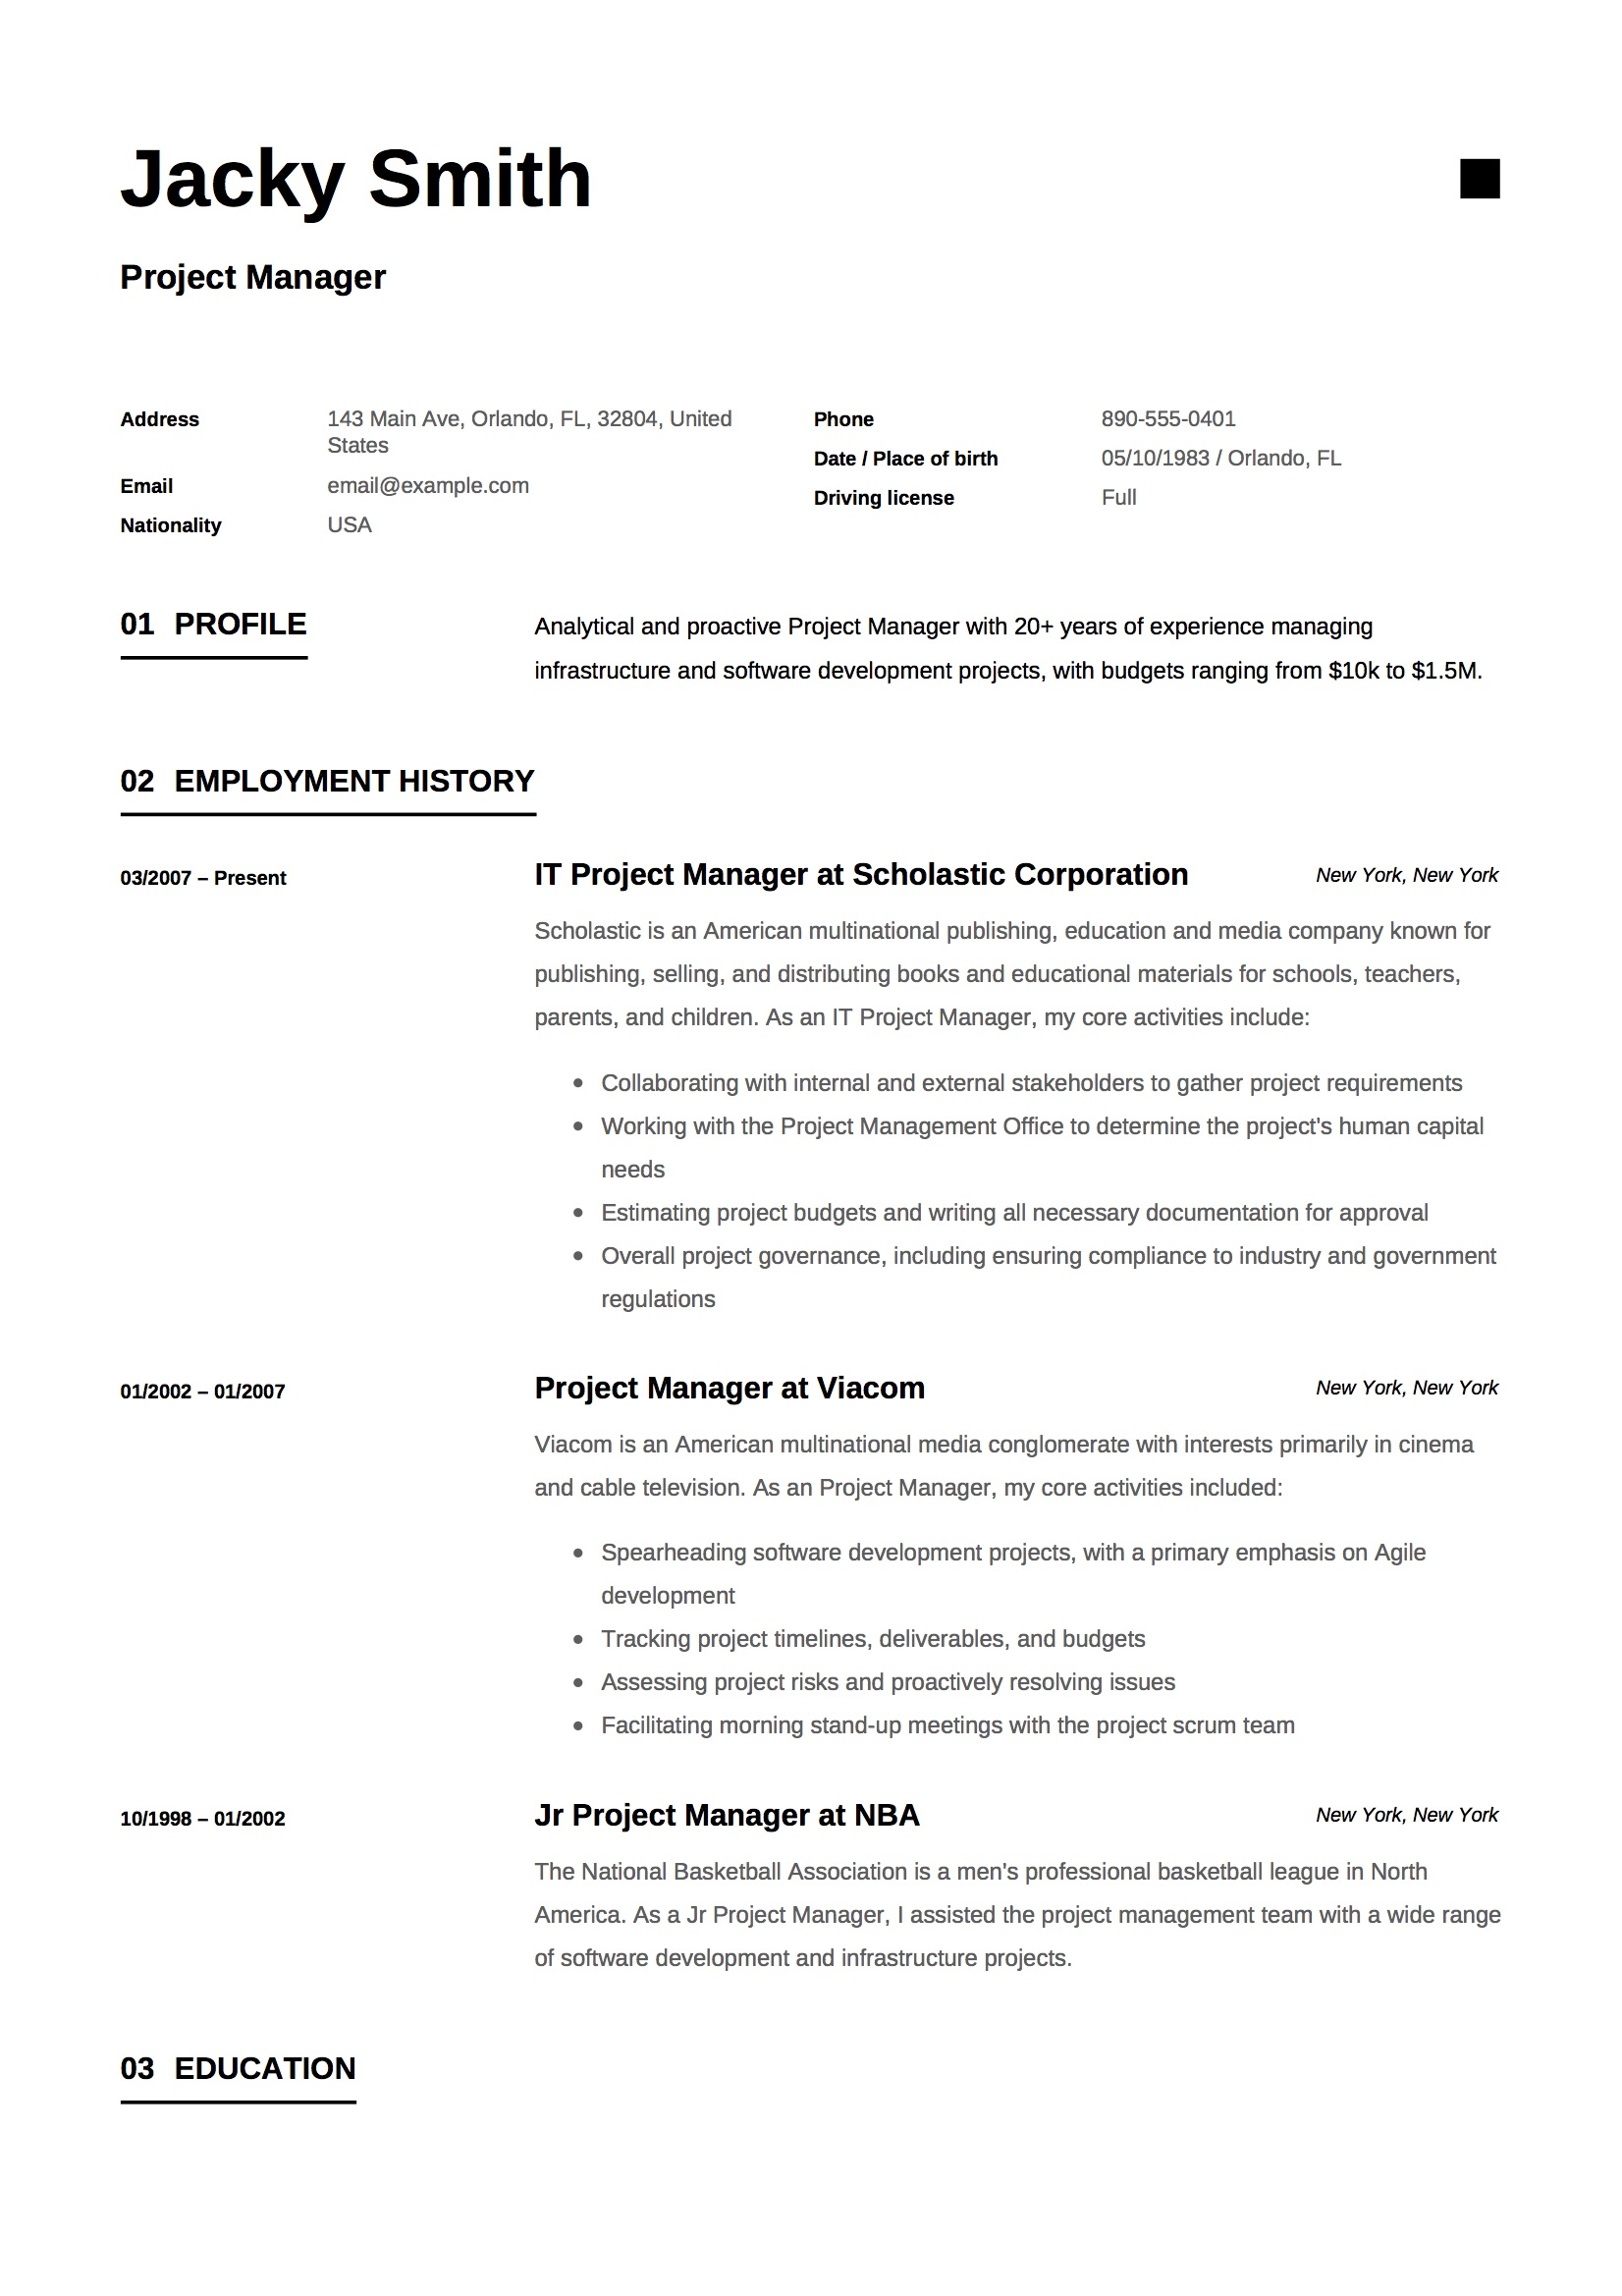 Resume - Project Manager-11